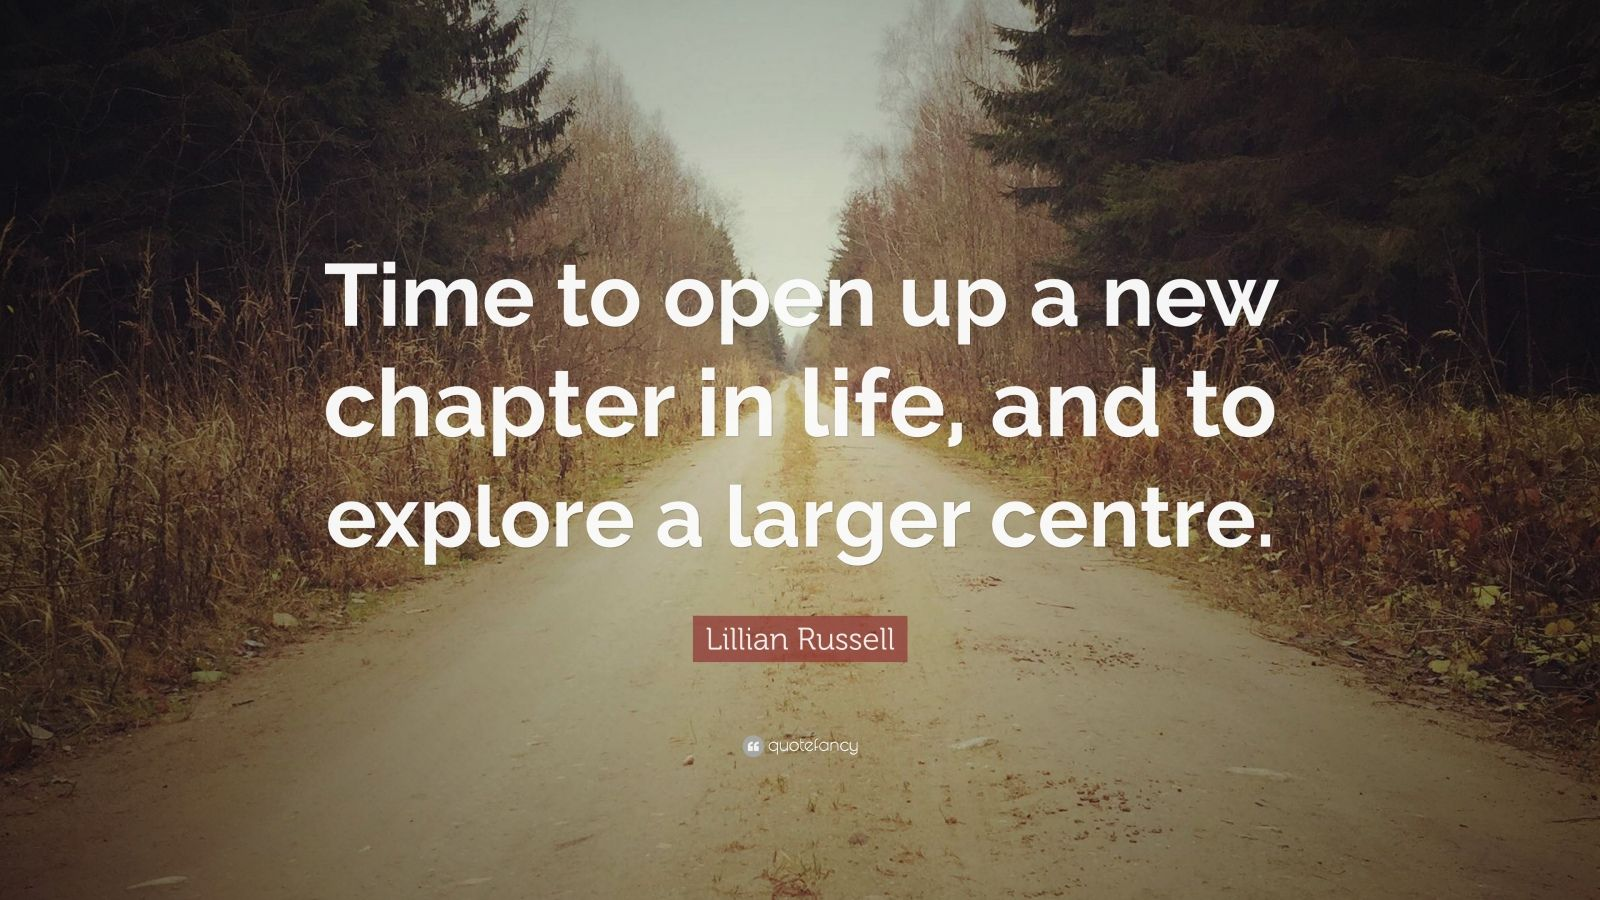 Lillian Russell Quote: Time to open up a new chapter in